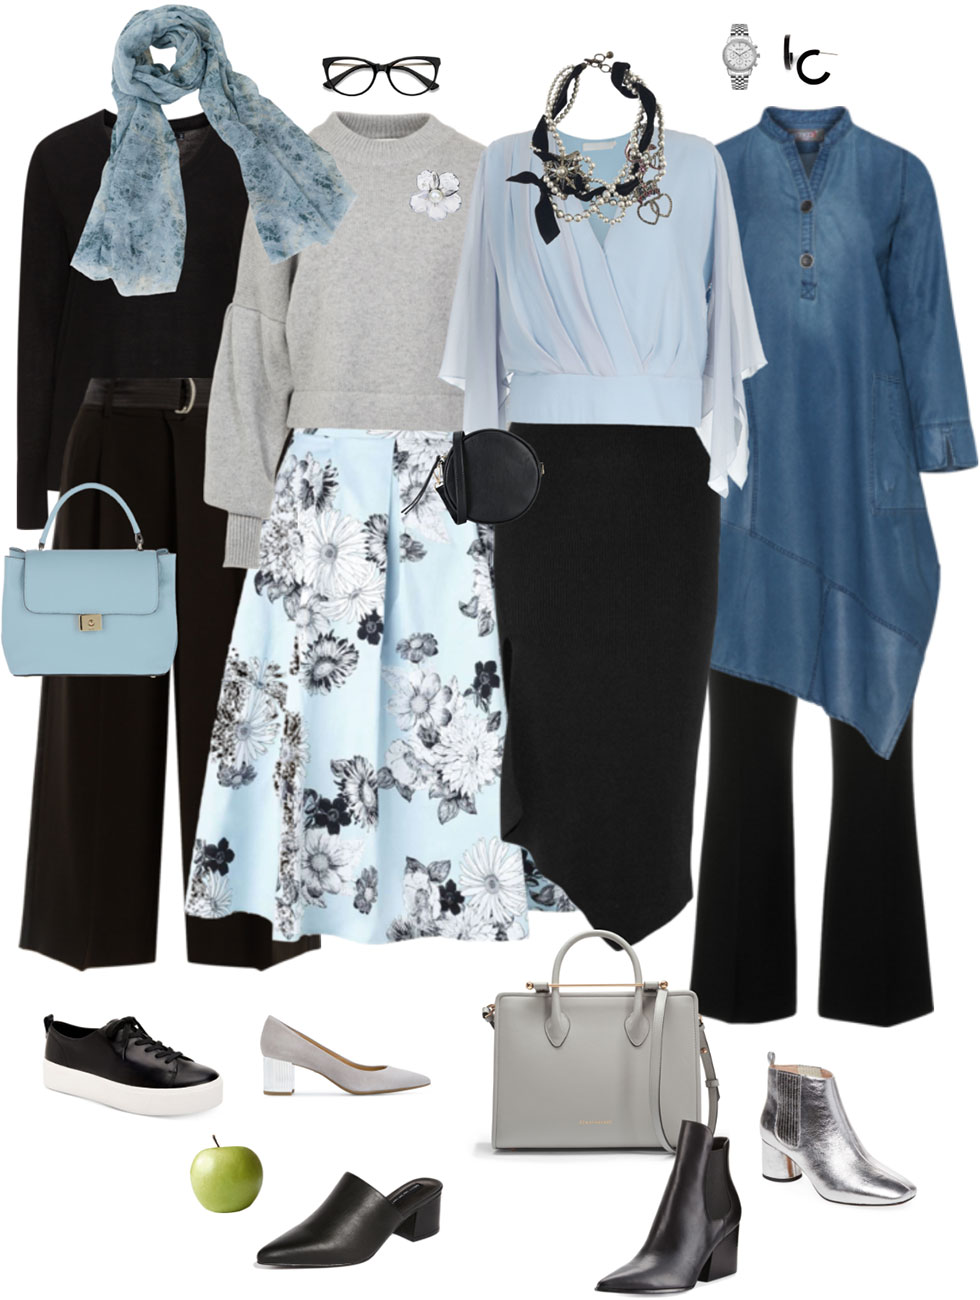 Ensemble: Black & Light Blue